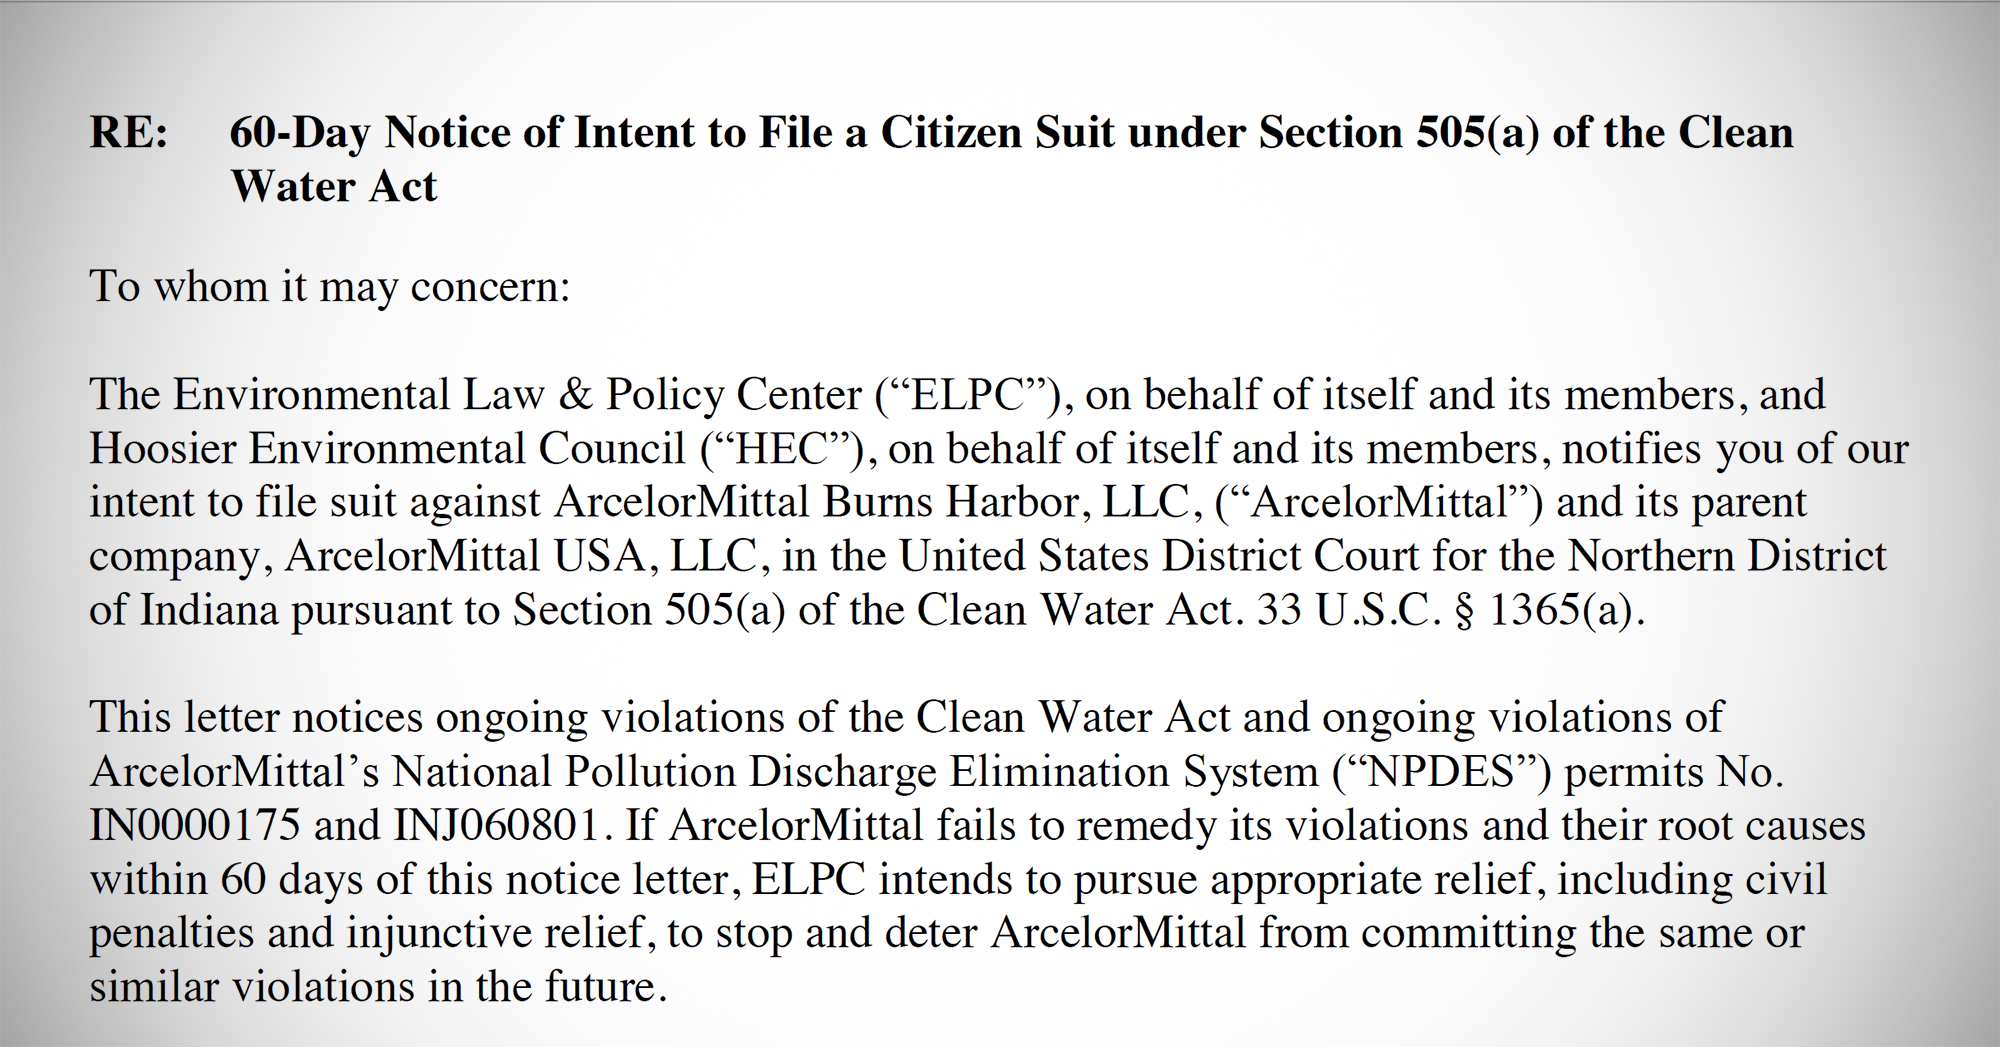 Two environmental groups say they plan to sue a company responsible for more than 100 Clean Water Act violations in northwestern Indiana, including the release of cyanide 25 times higher than the level permitted by law.